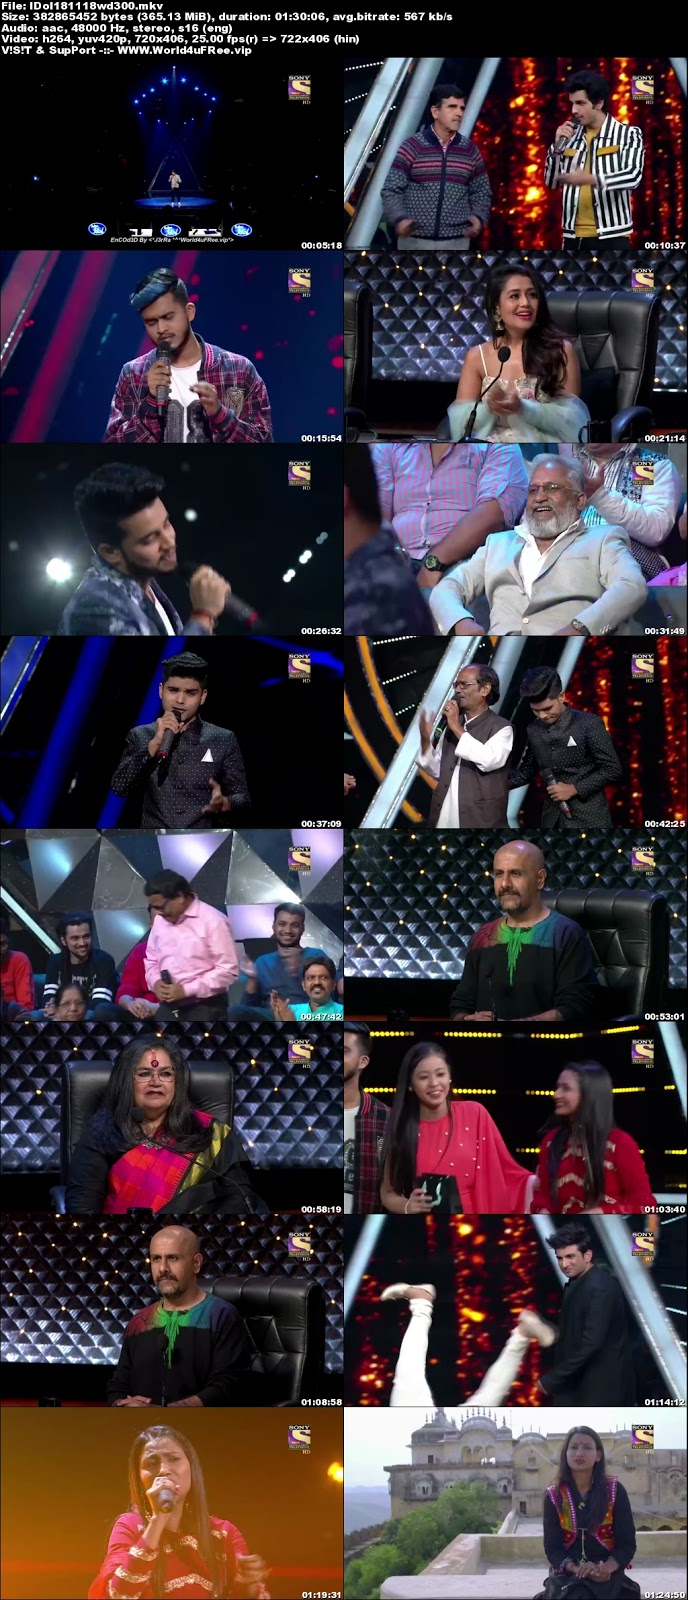 Indian Idol Season 10 18 November 2018 WEBRip 480p 300Mb  world4ufree.vip tv show Indian Idol Season 10 hindi tv show Indian Idol Season 10  Sony Set  tv show compressed small size free download or watch online at world4ufree.vip